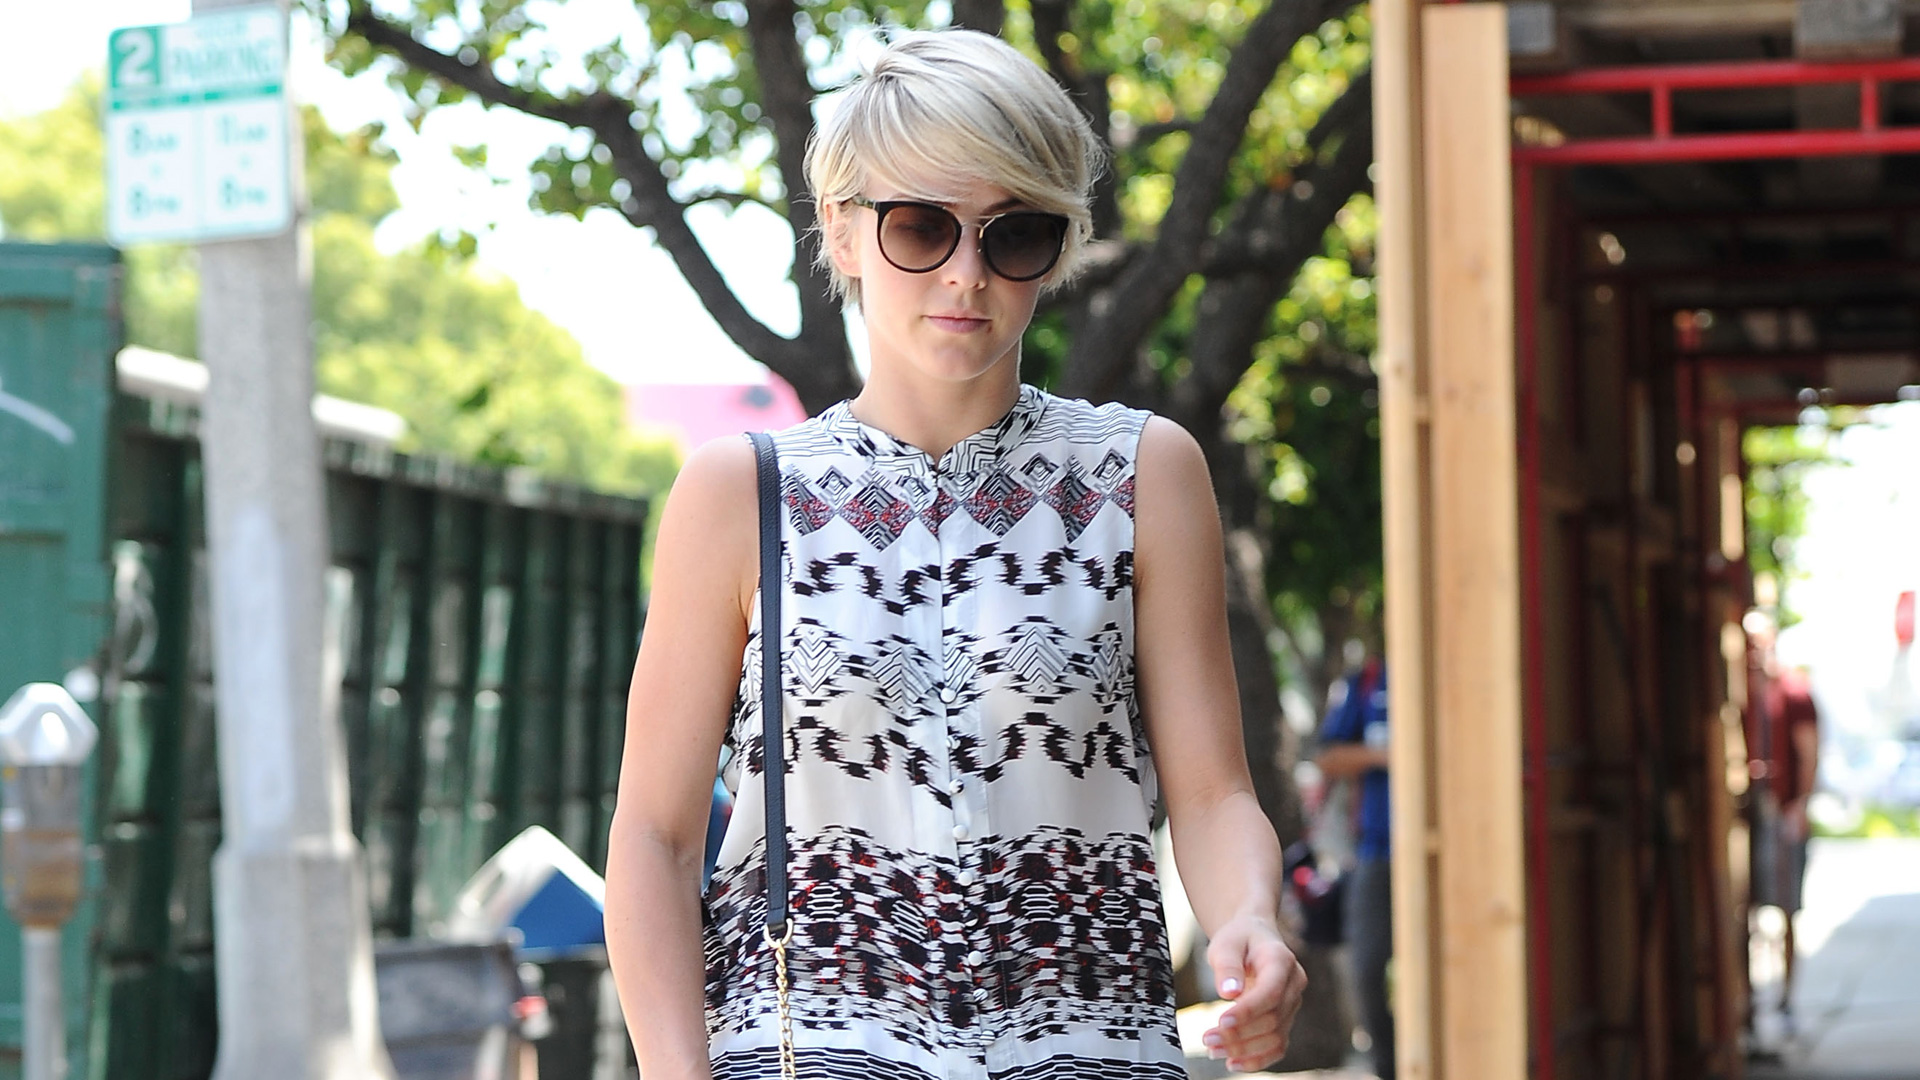 Get the look: Julianne Hough's summer prints